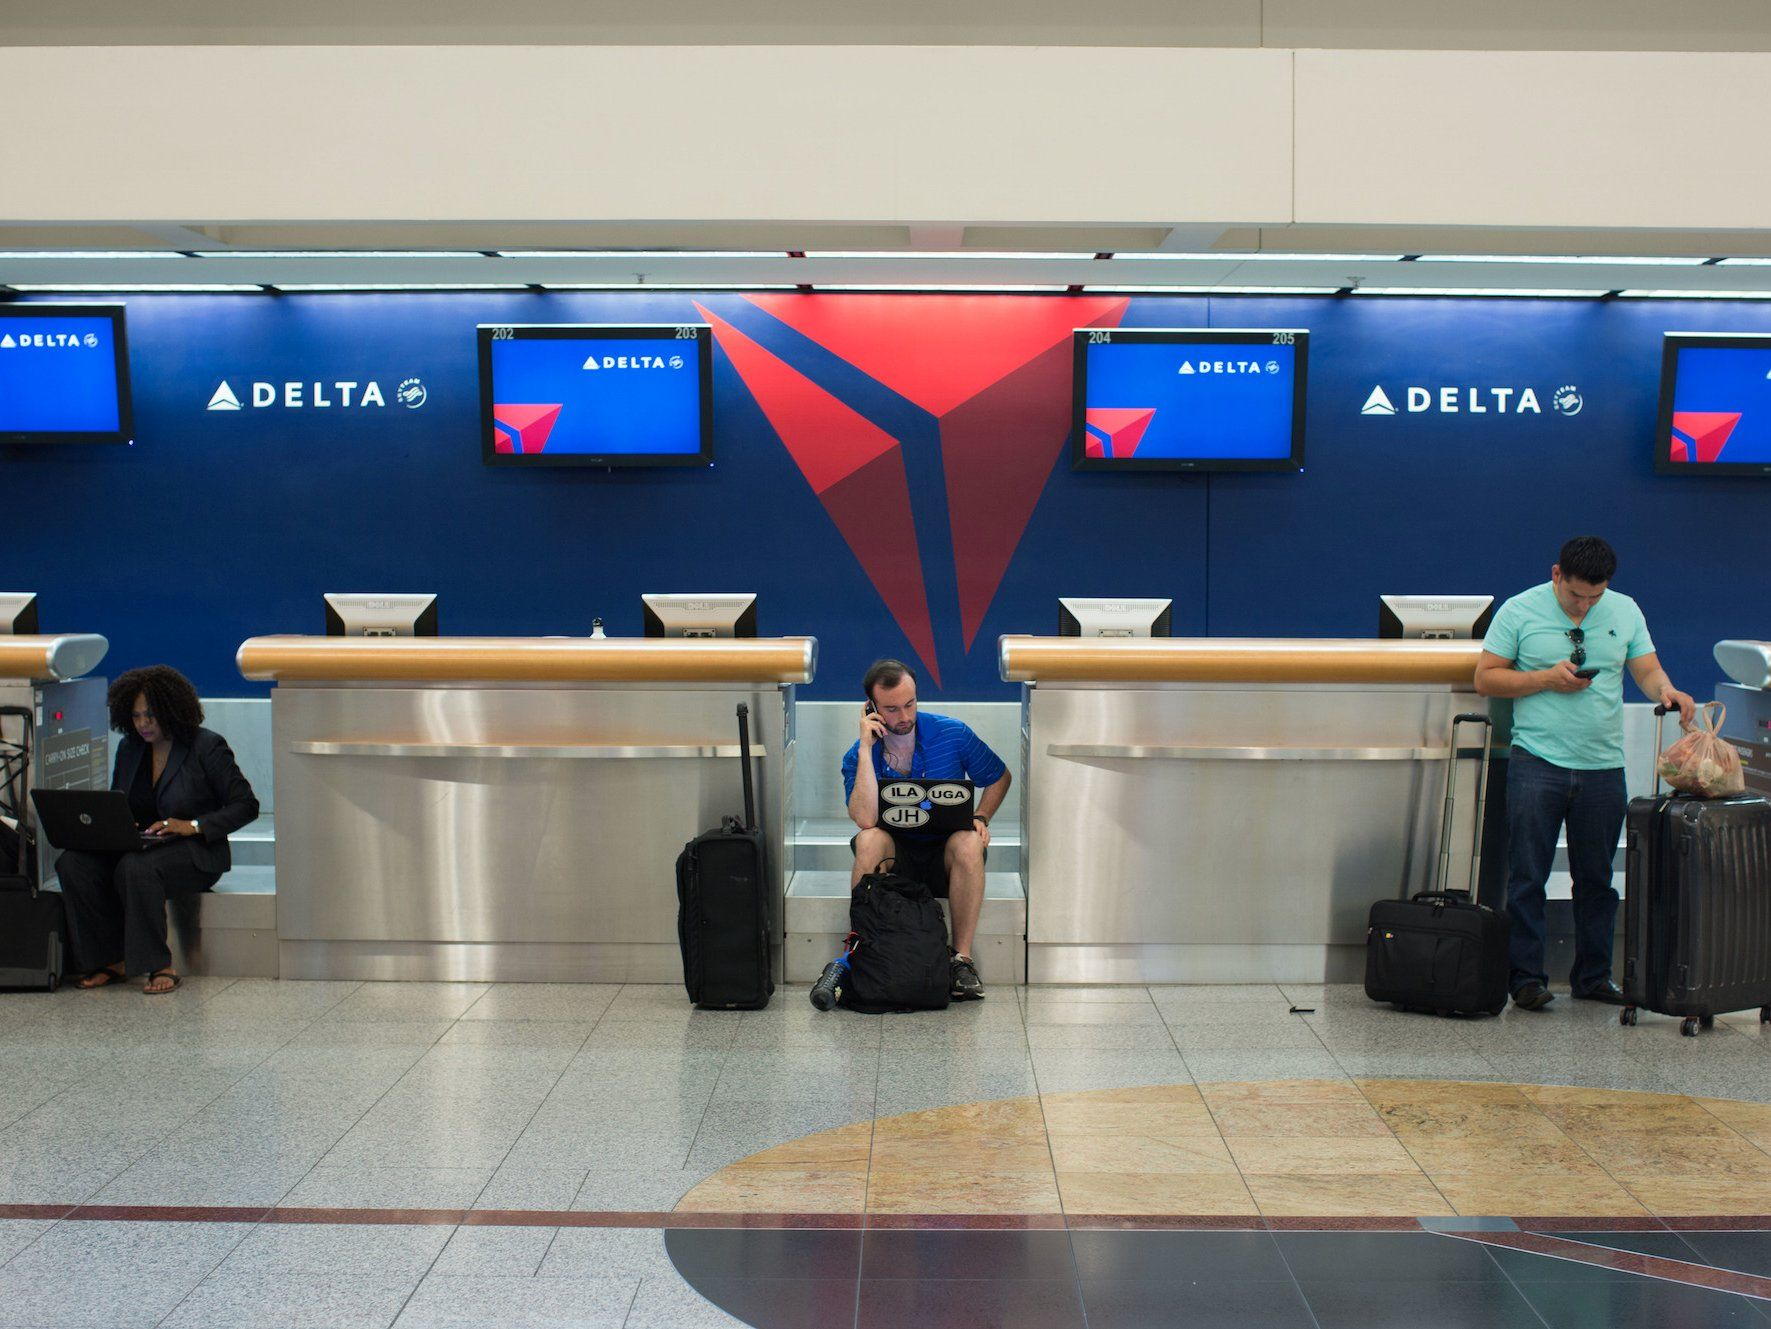 Delta makes strict new rules for emotional support animals